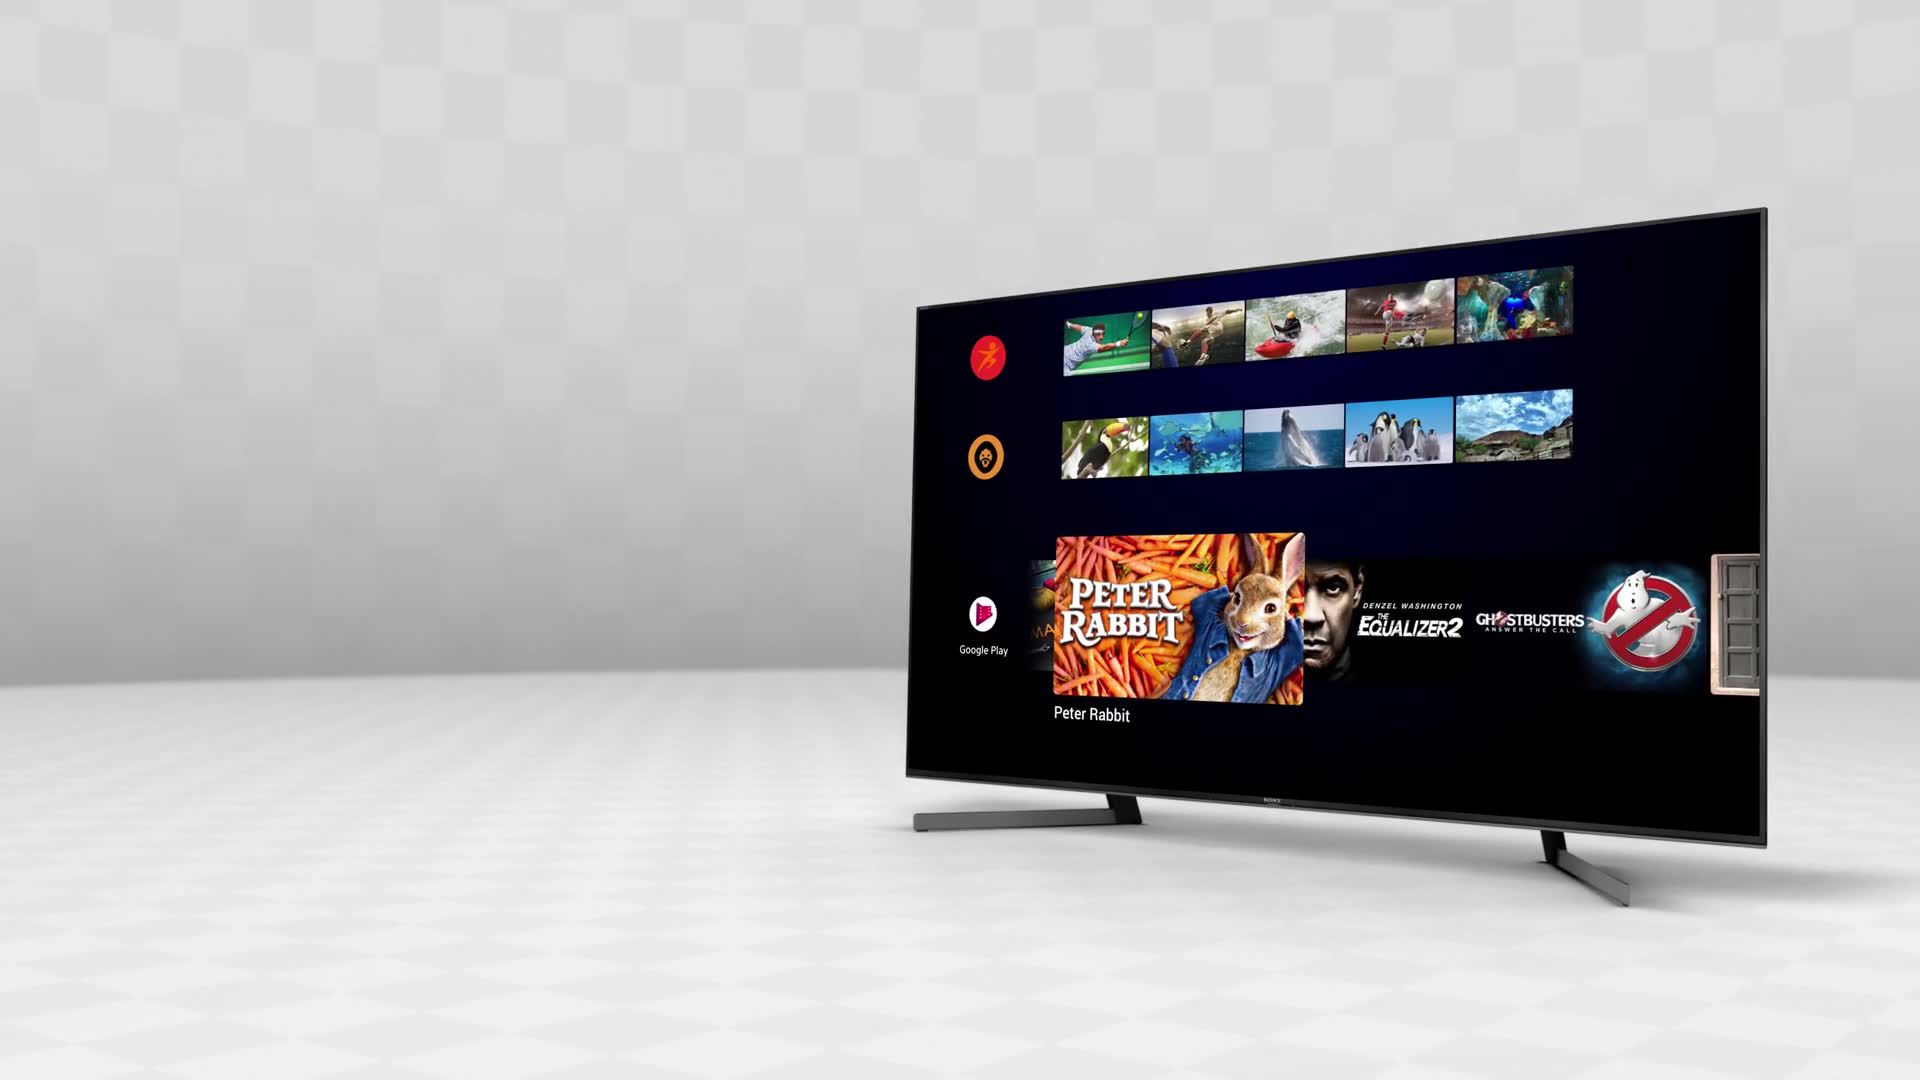 Sony Bravia KD55AG9 (2019) OLED HDR 4K Ultra HD Smart Android TV, 55